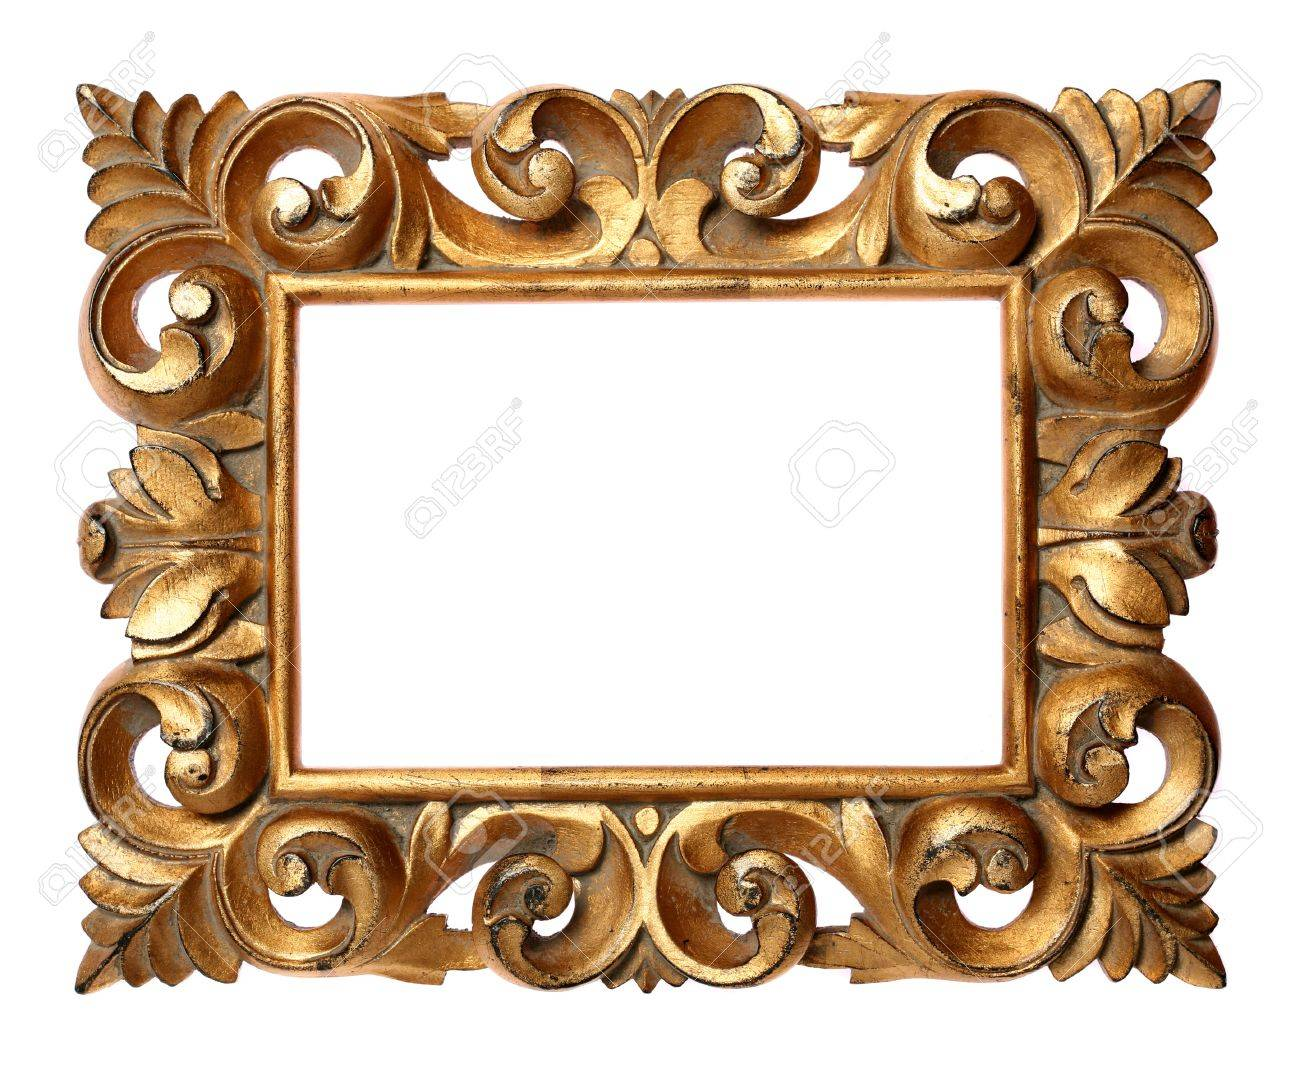 Wooden Baroque Frame Isolated On White Stock Photo, Picture And ...